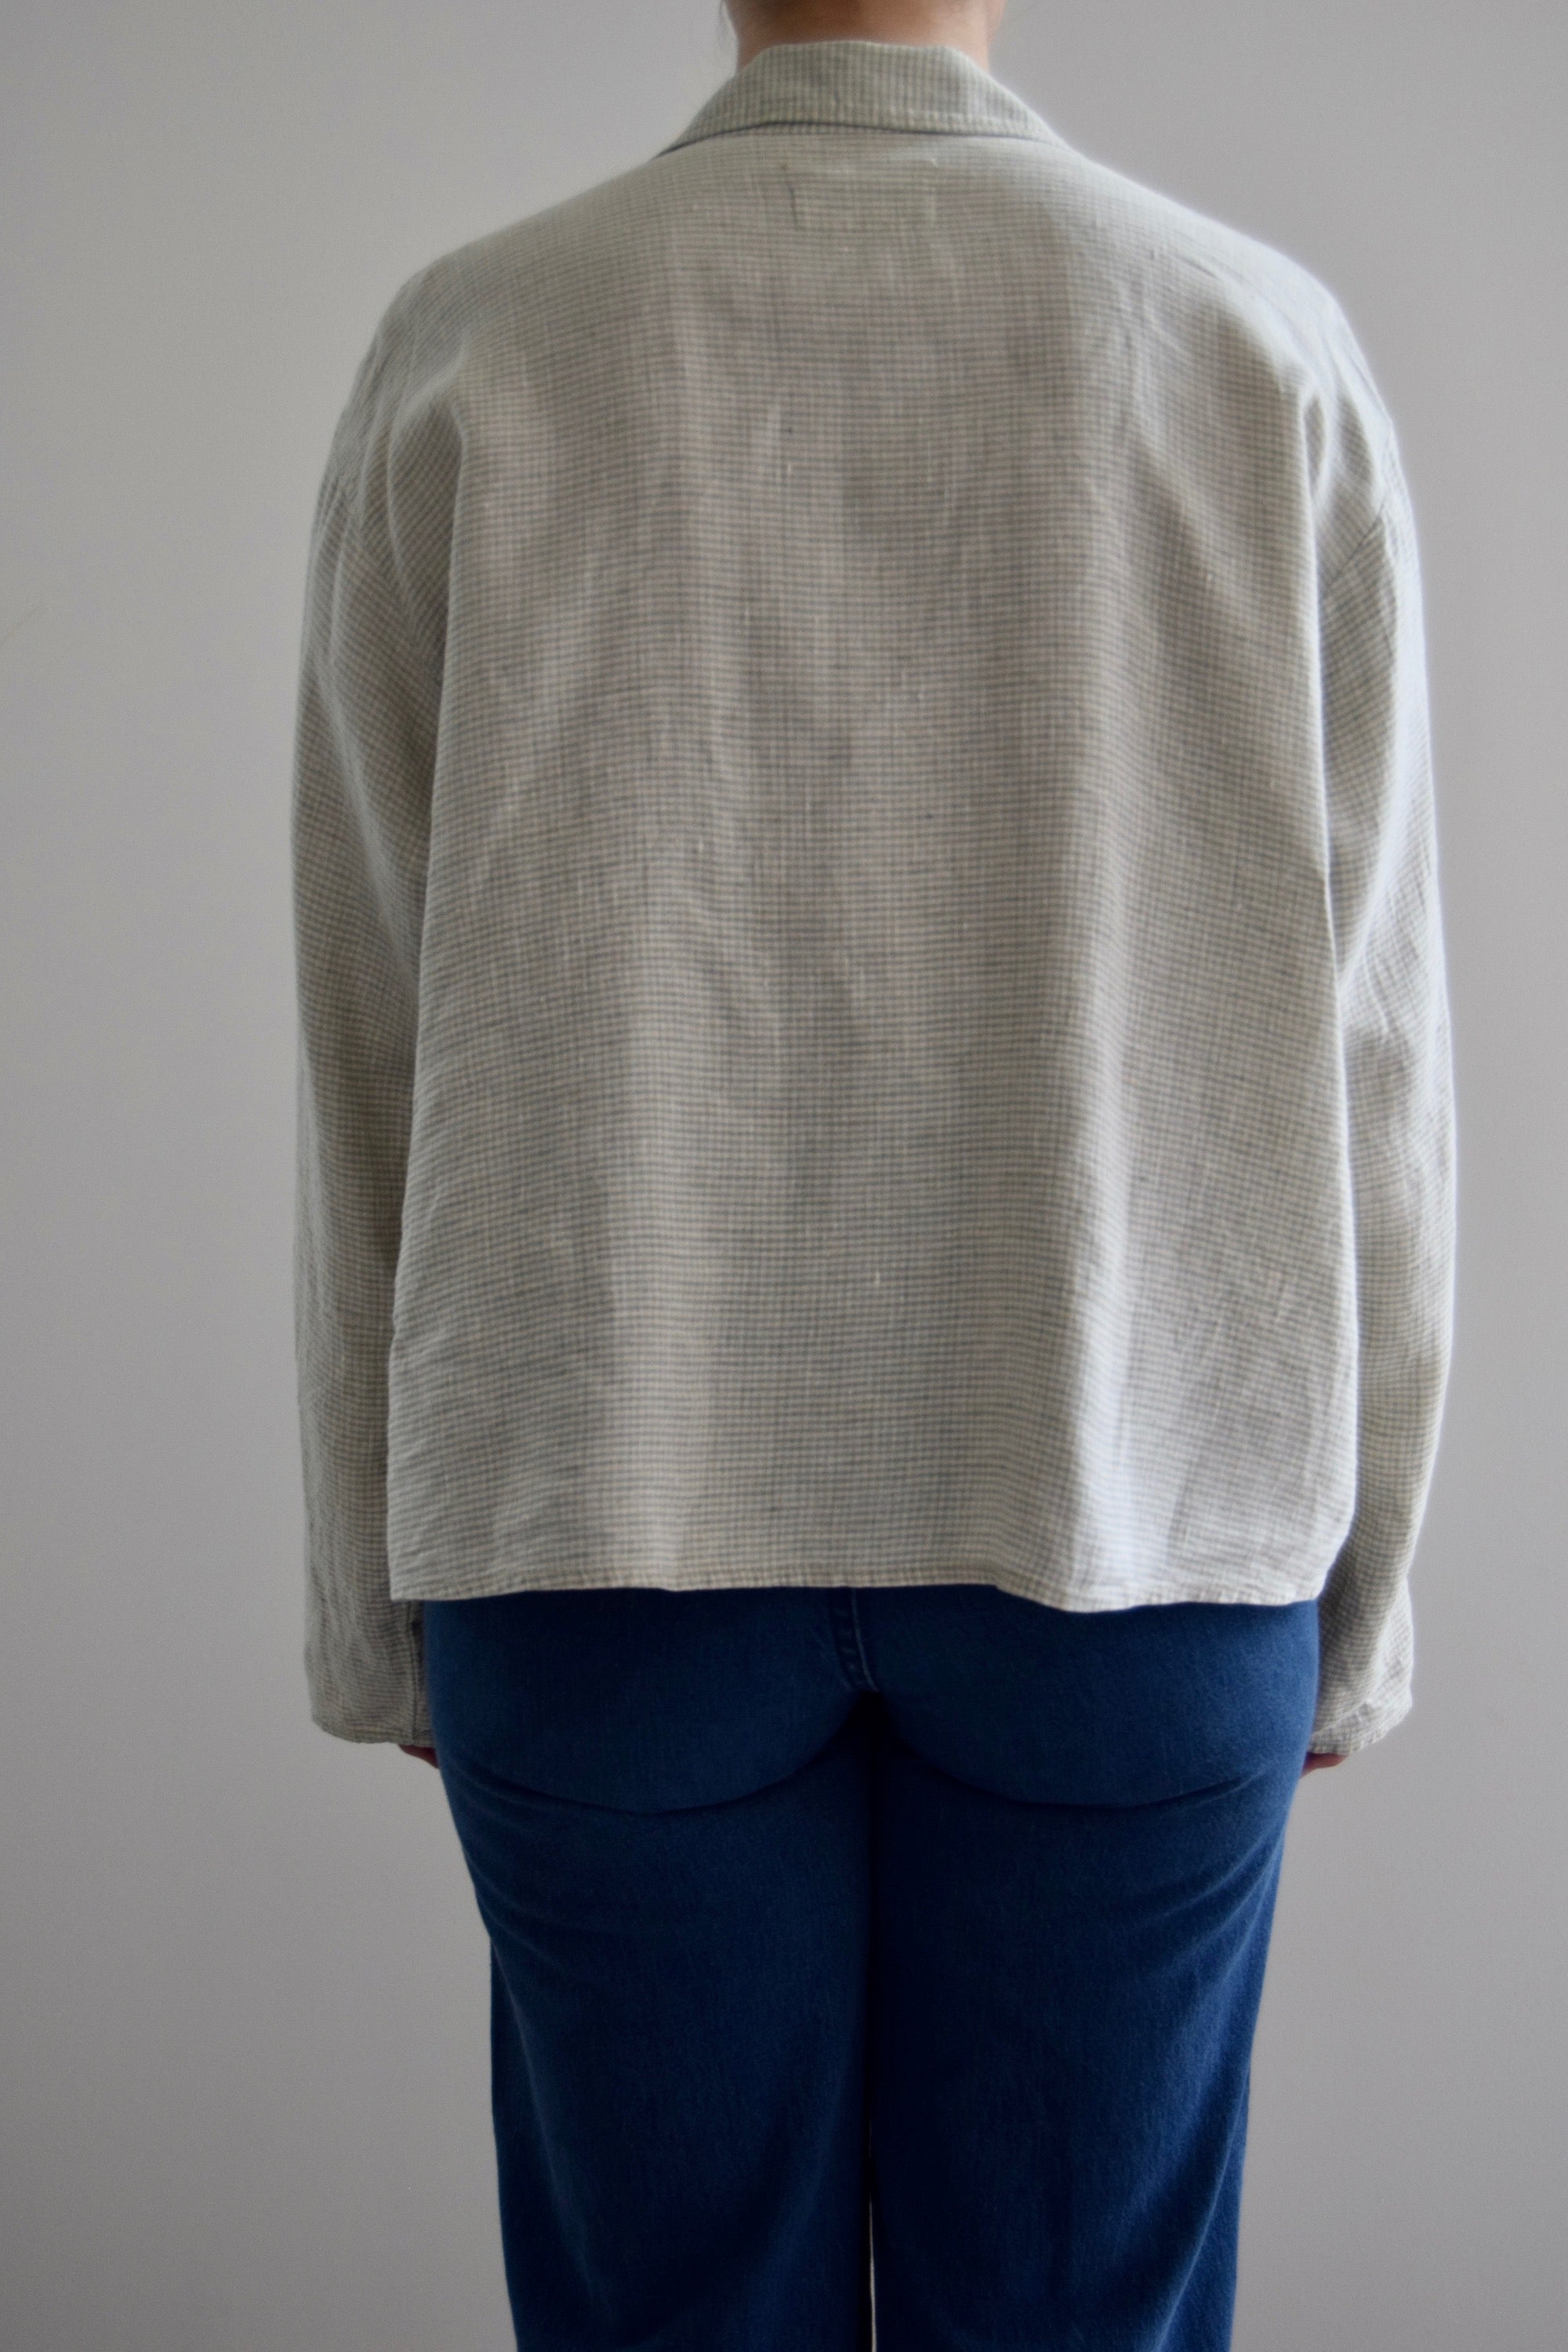 FLAX Linen Cropped Light Green Jacket Top